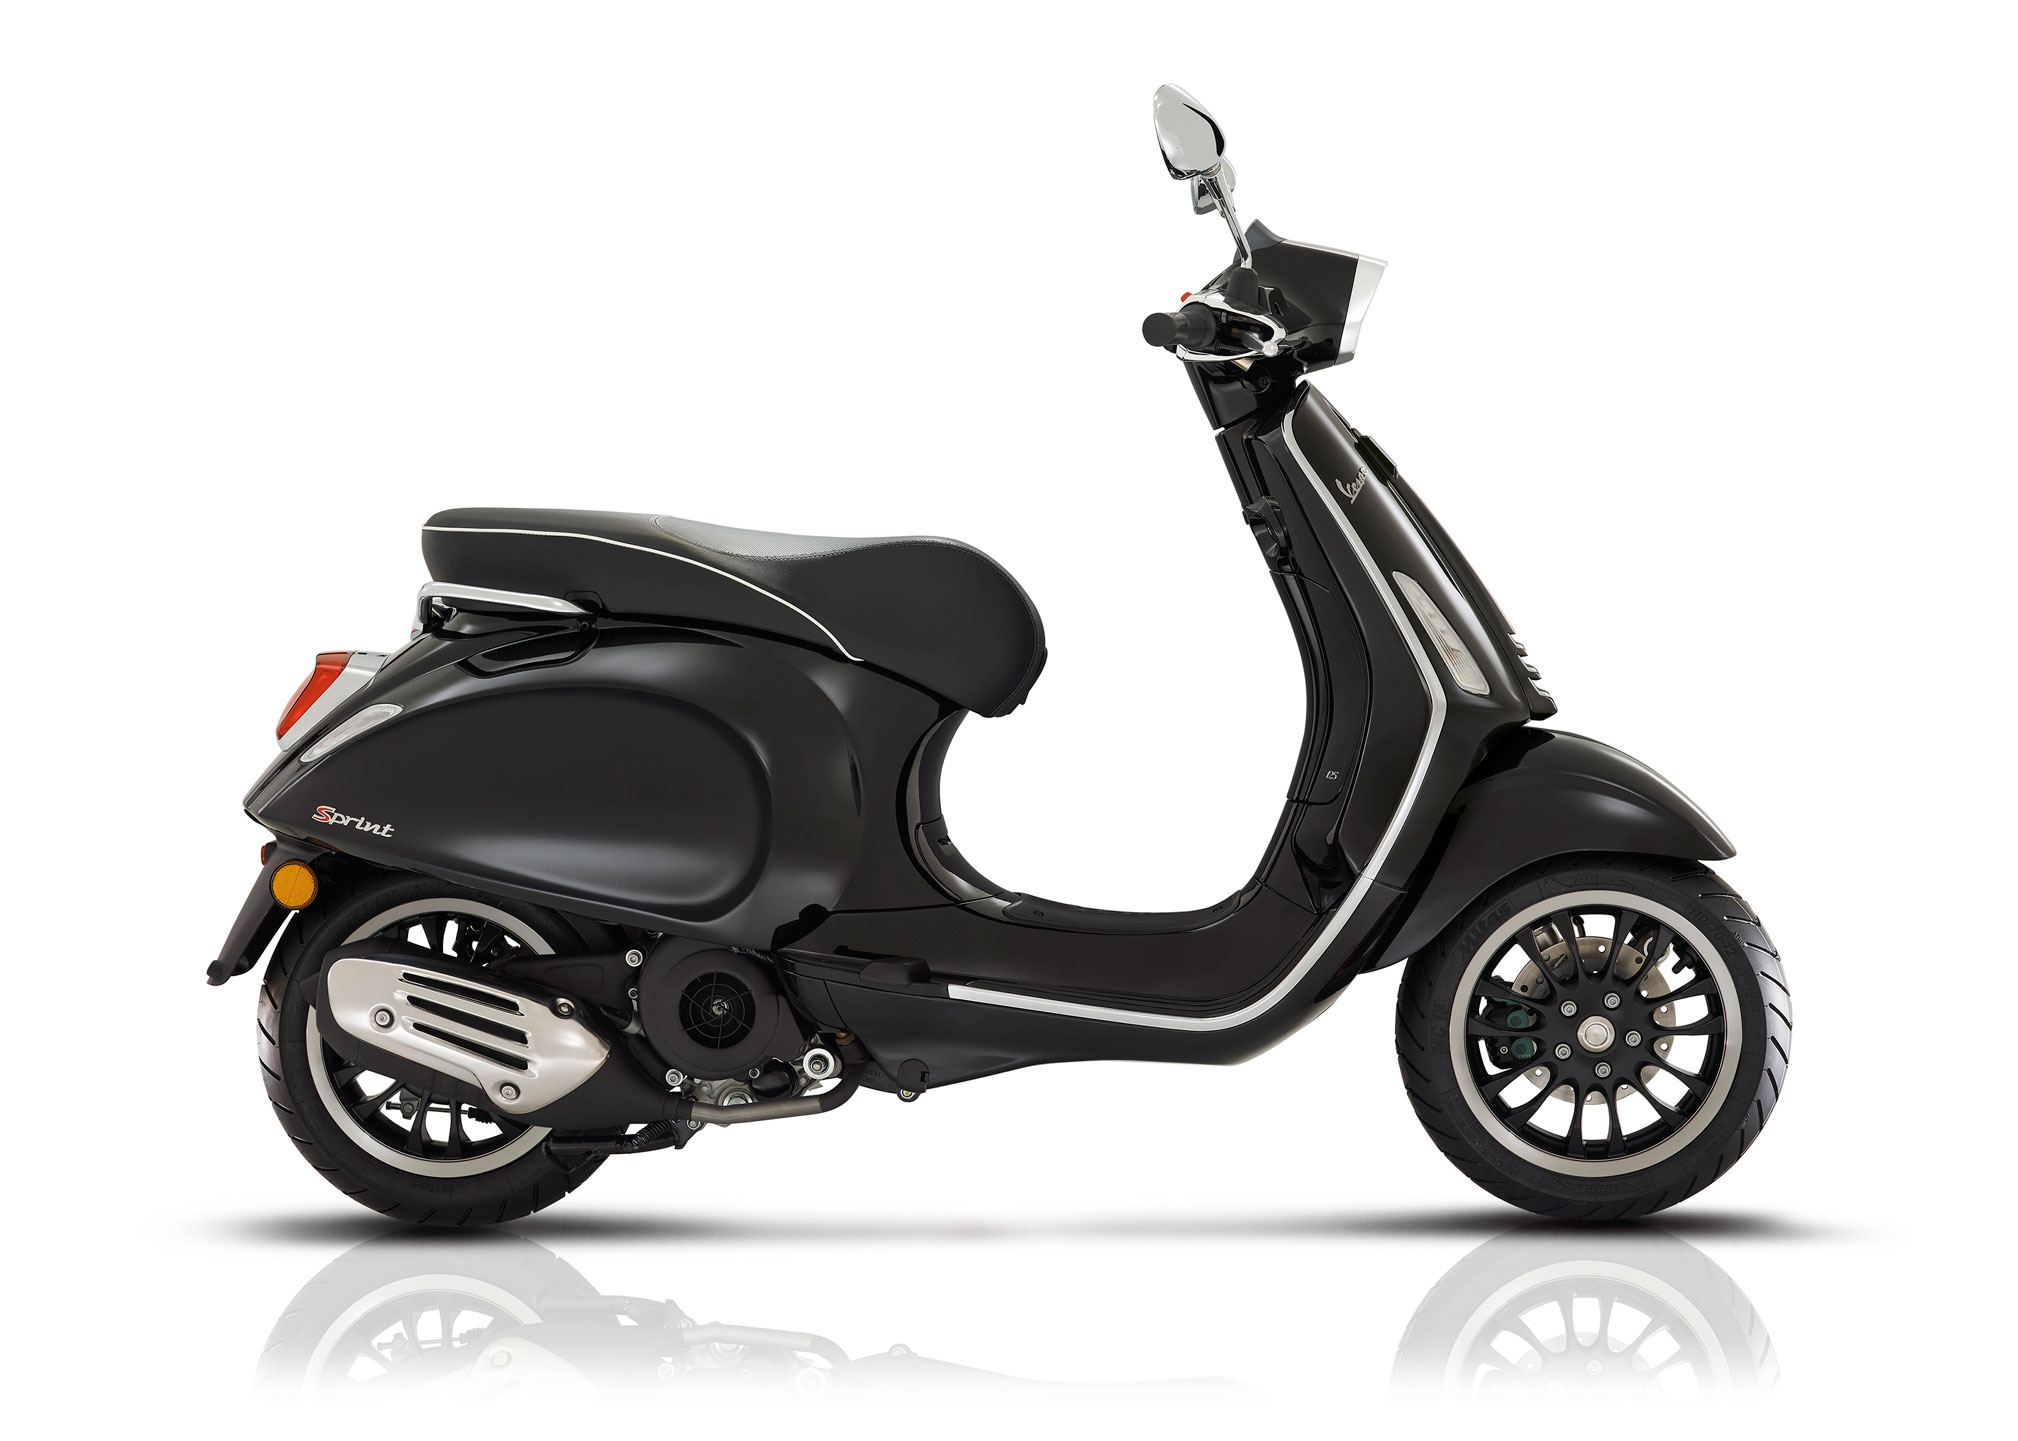 2018 vespa sprint 125 review totalmotorcycle. Black Bedroom Furniture Sets. Home Design Ideas